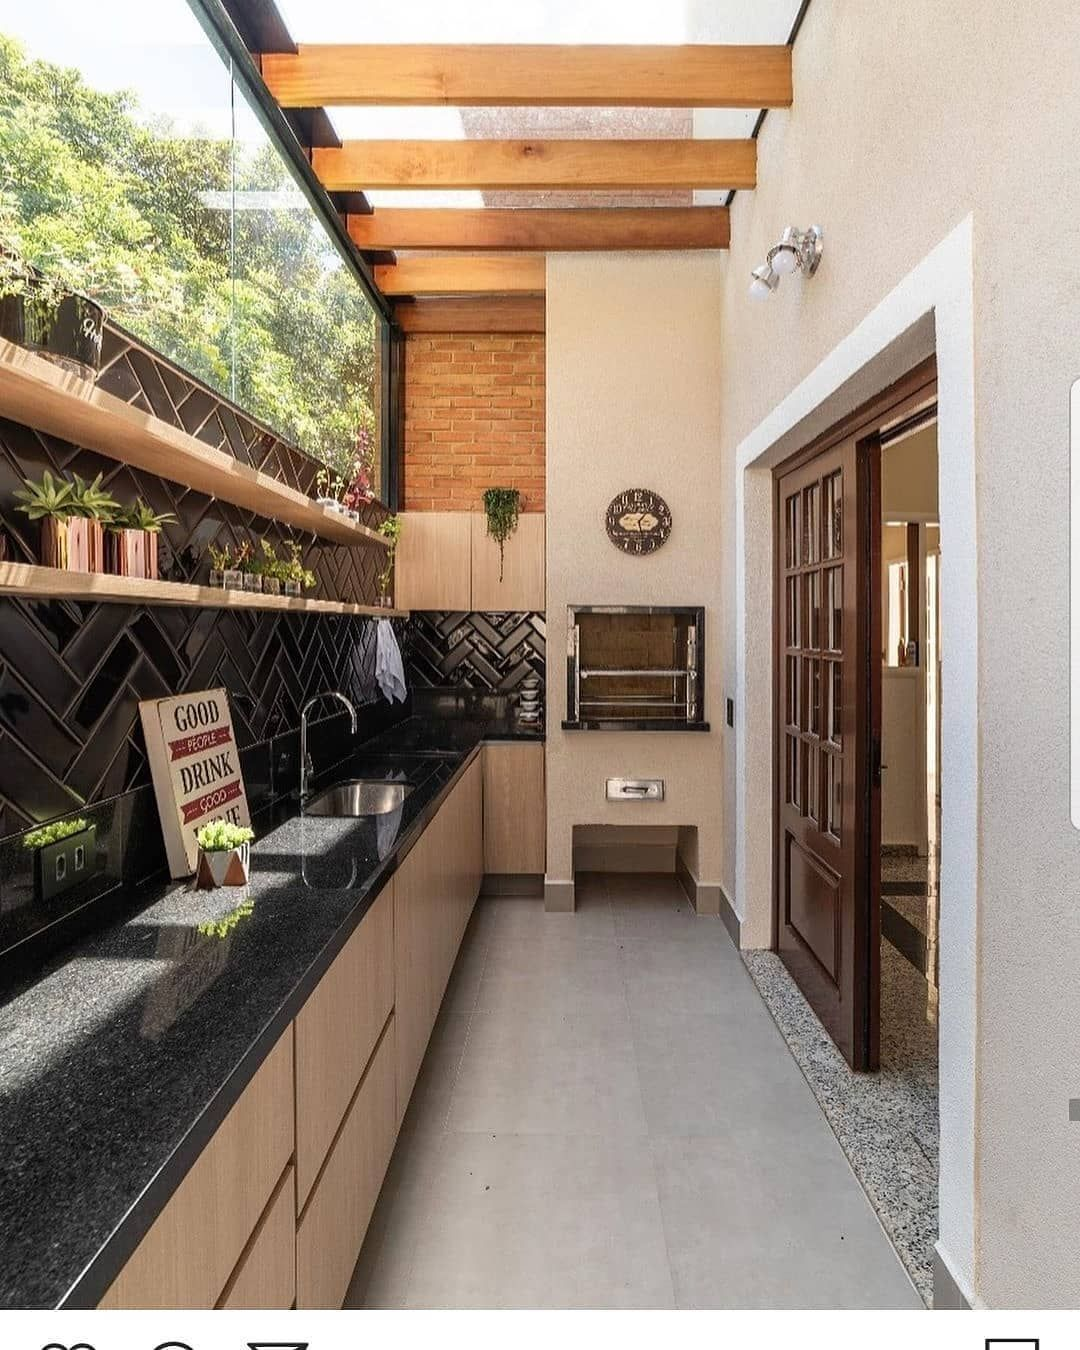 The appeal of a mas. Before&AfterPics on Twitter | Exteriores de casas, Diseño ...